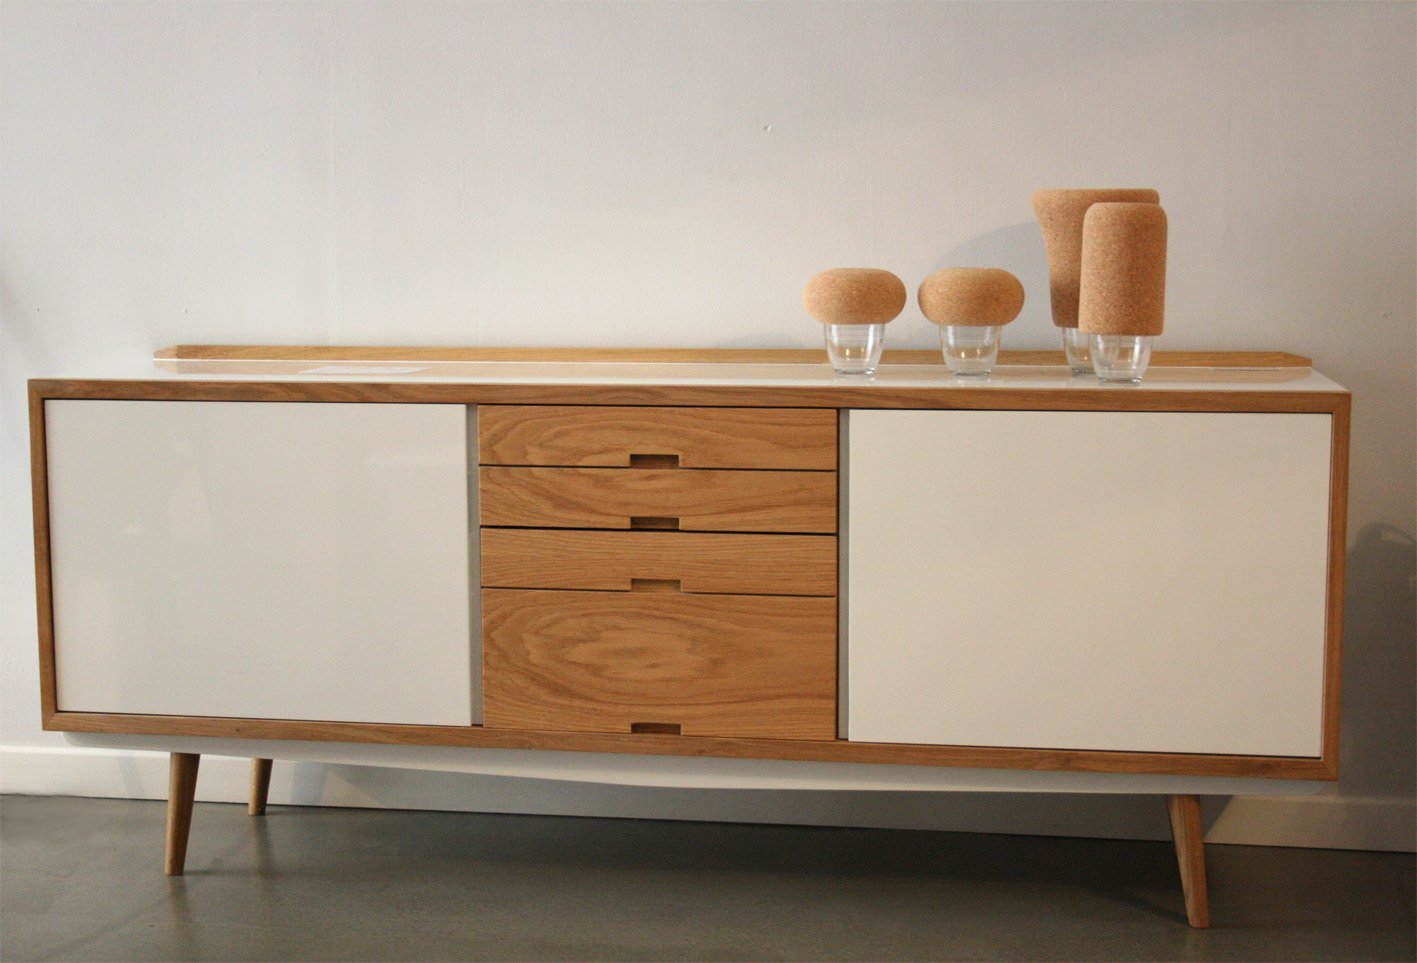 Enfilade blanche boutique design - Enfilade design scandinave ...